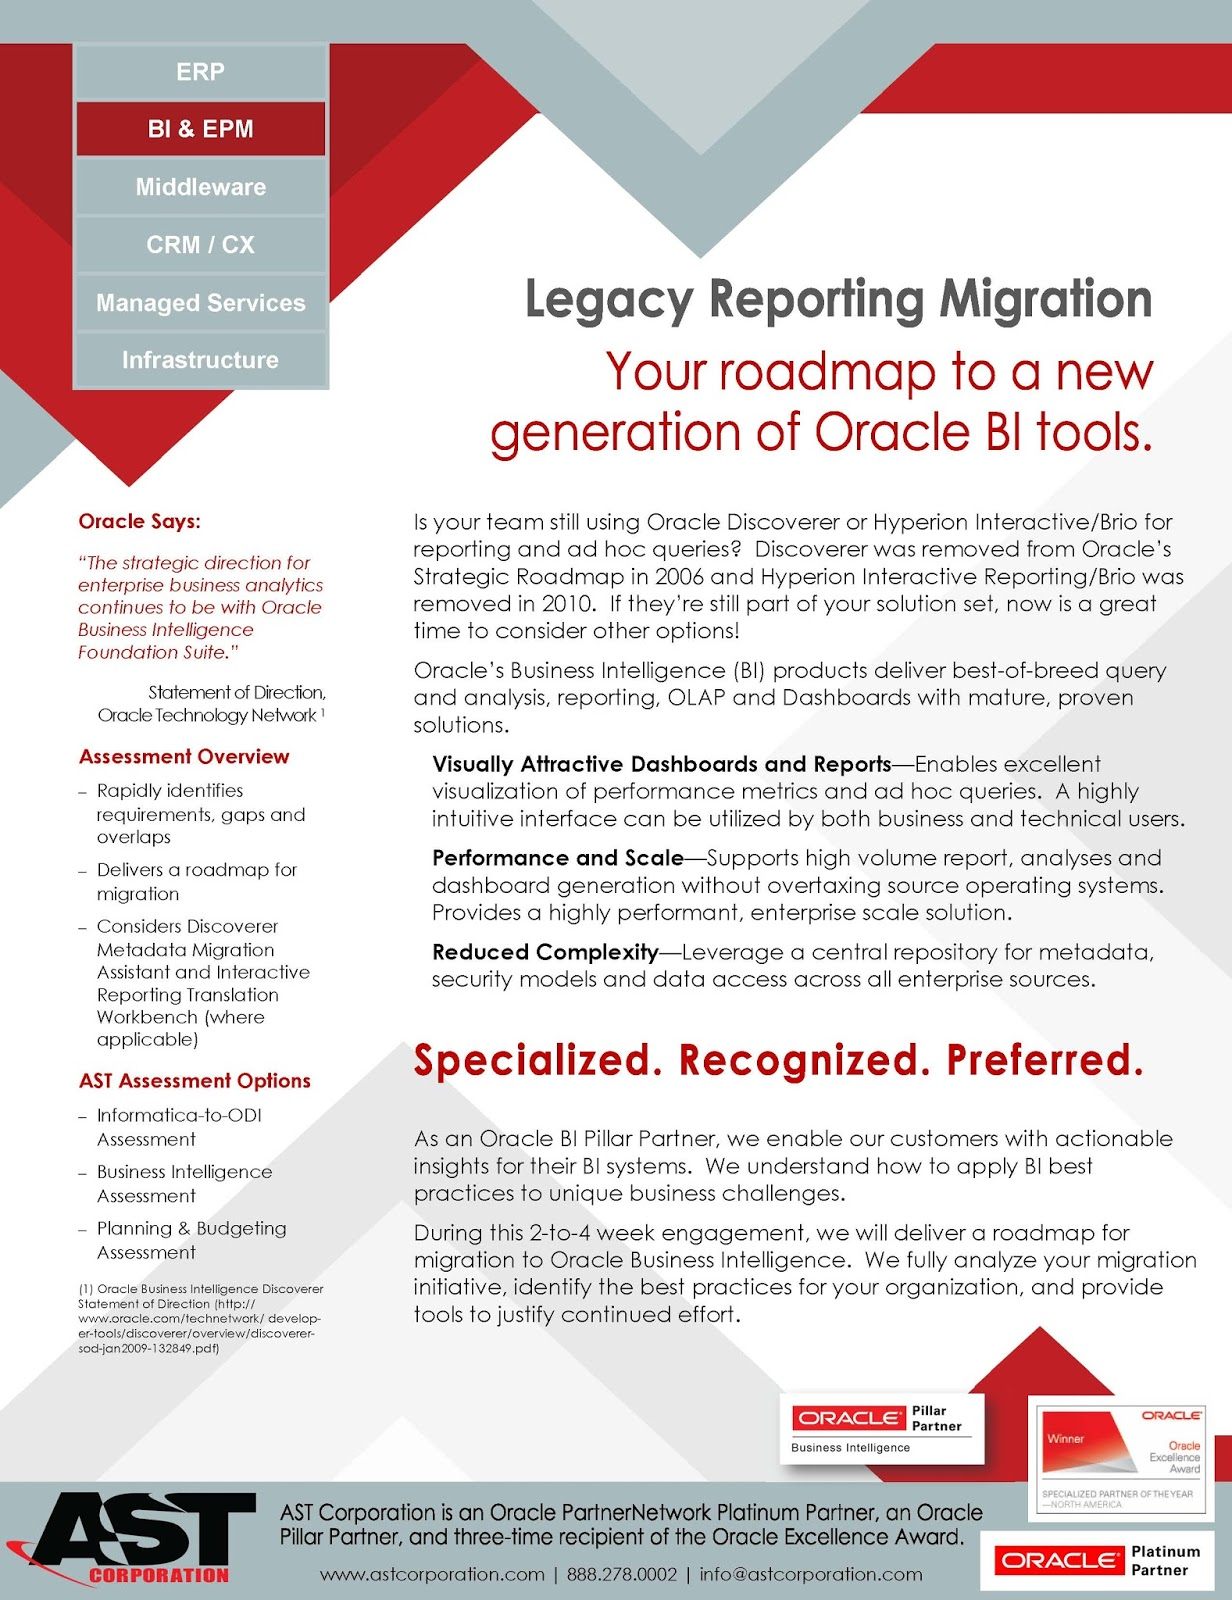 discoverer was removed from oracles strategic roadmap in 2006 and hyperion interactive reportingbrio was removed in